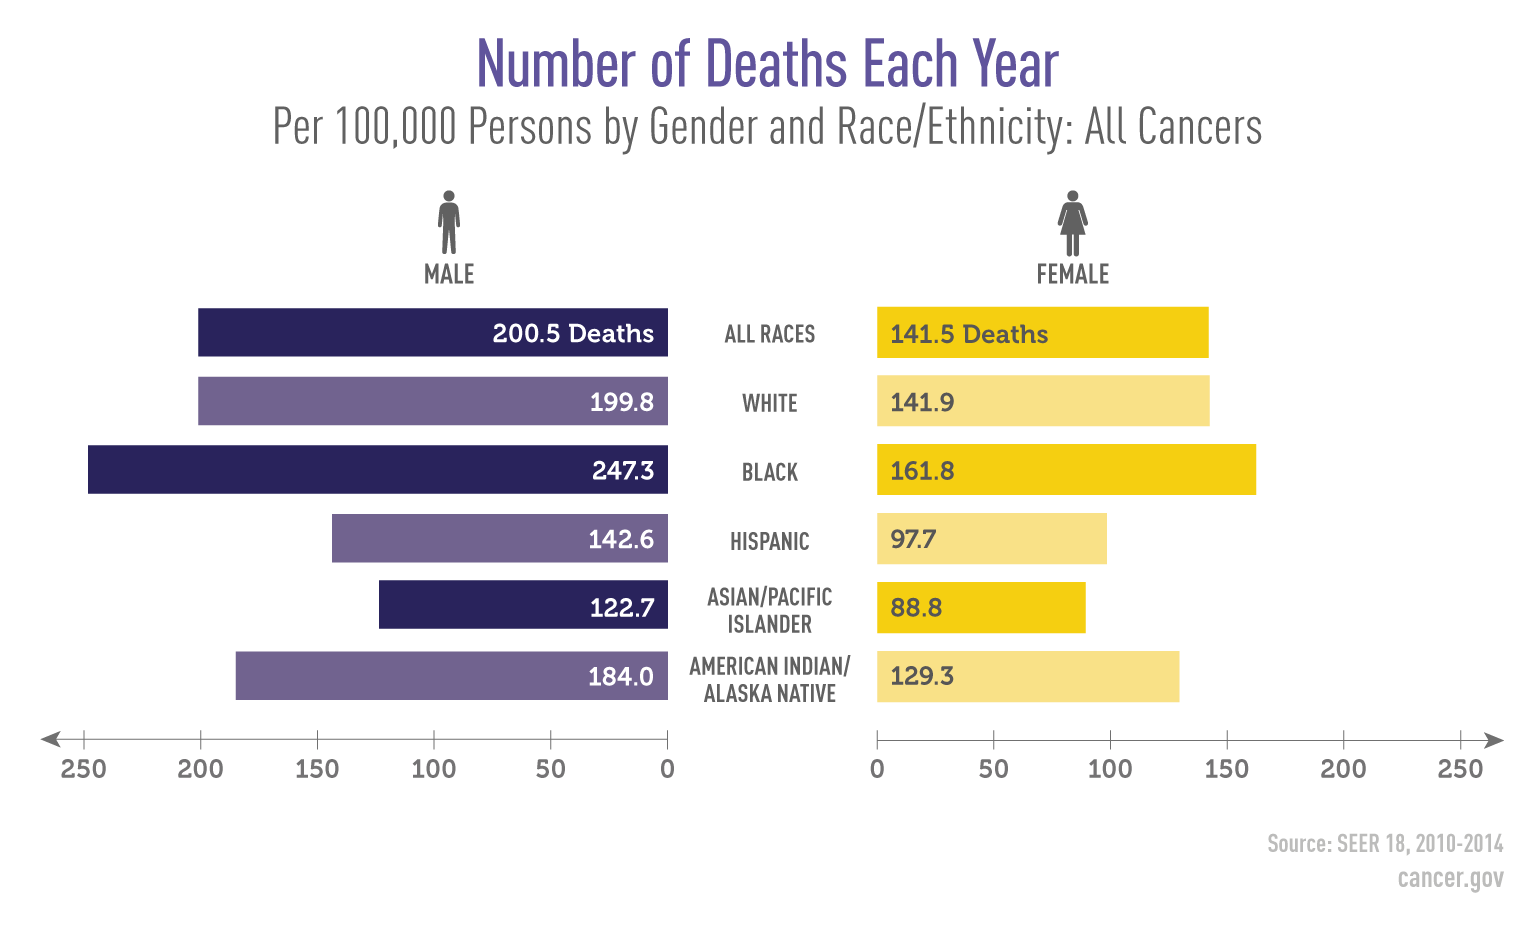 Infographic showing the annual death rate from cancer per 100,000 people. The information is also broken out by gender and race/ethnicity